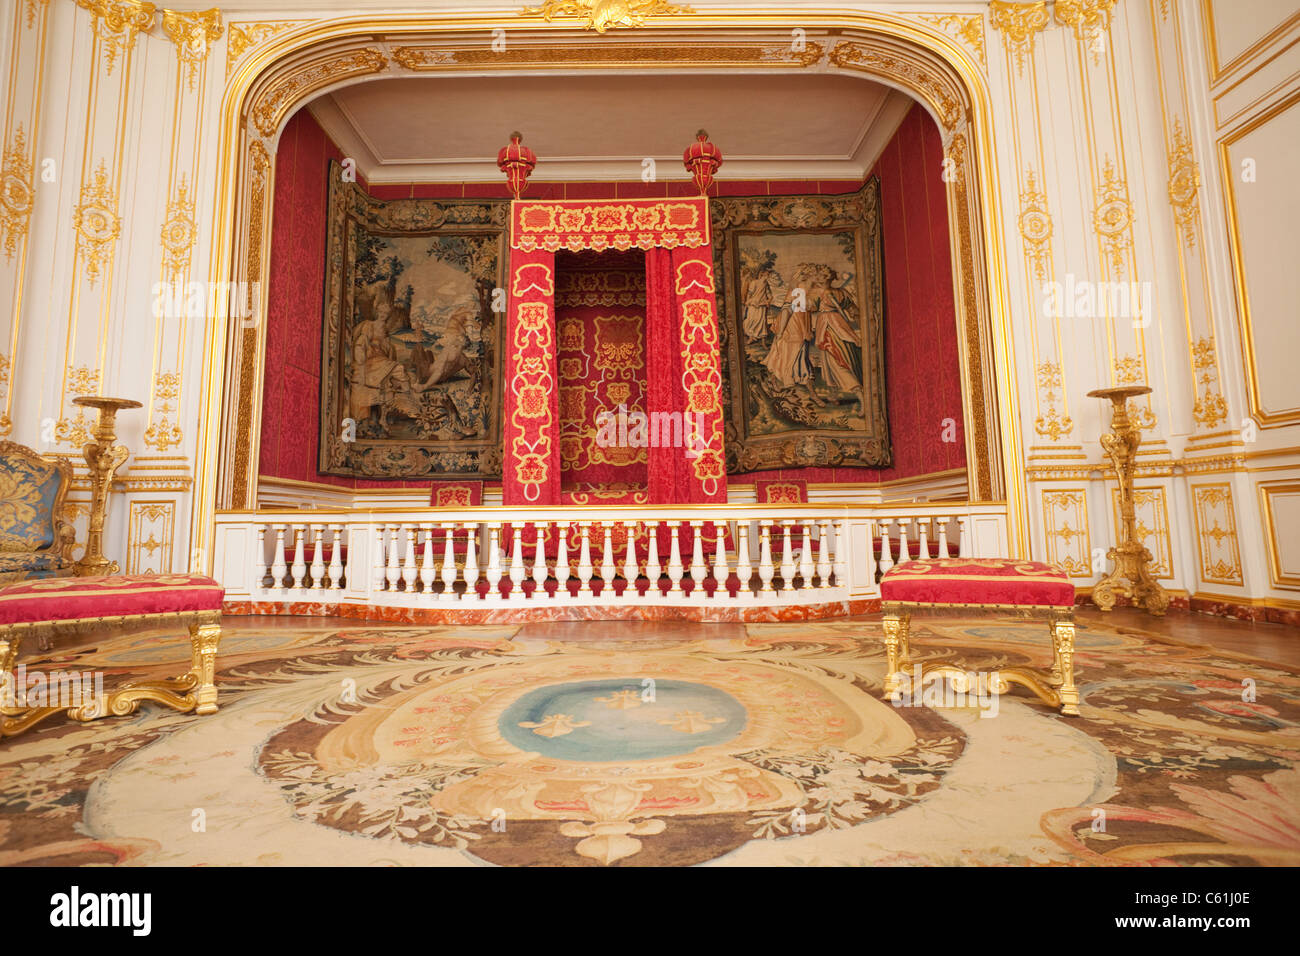 Louis Xiv Bedroom Stock Photos & Louis Xiv Bedroom Stock Images - Alamy